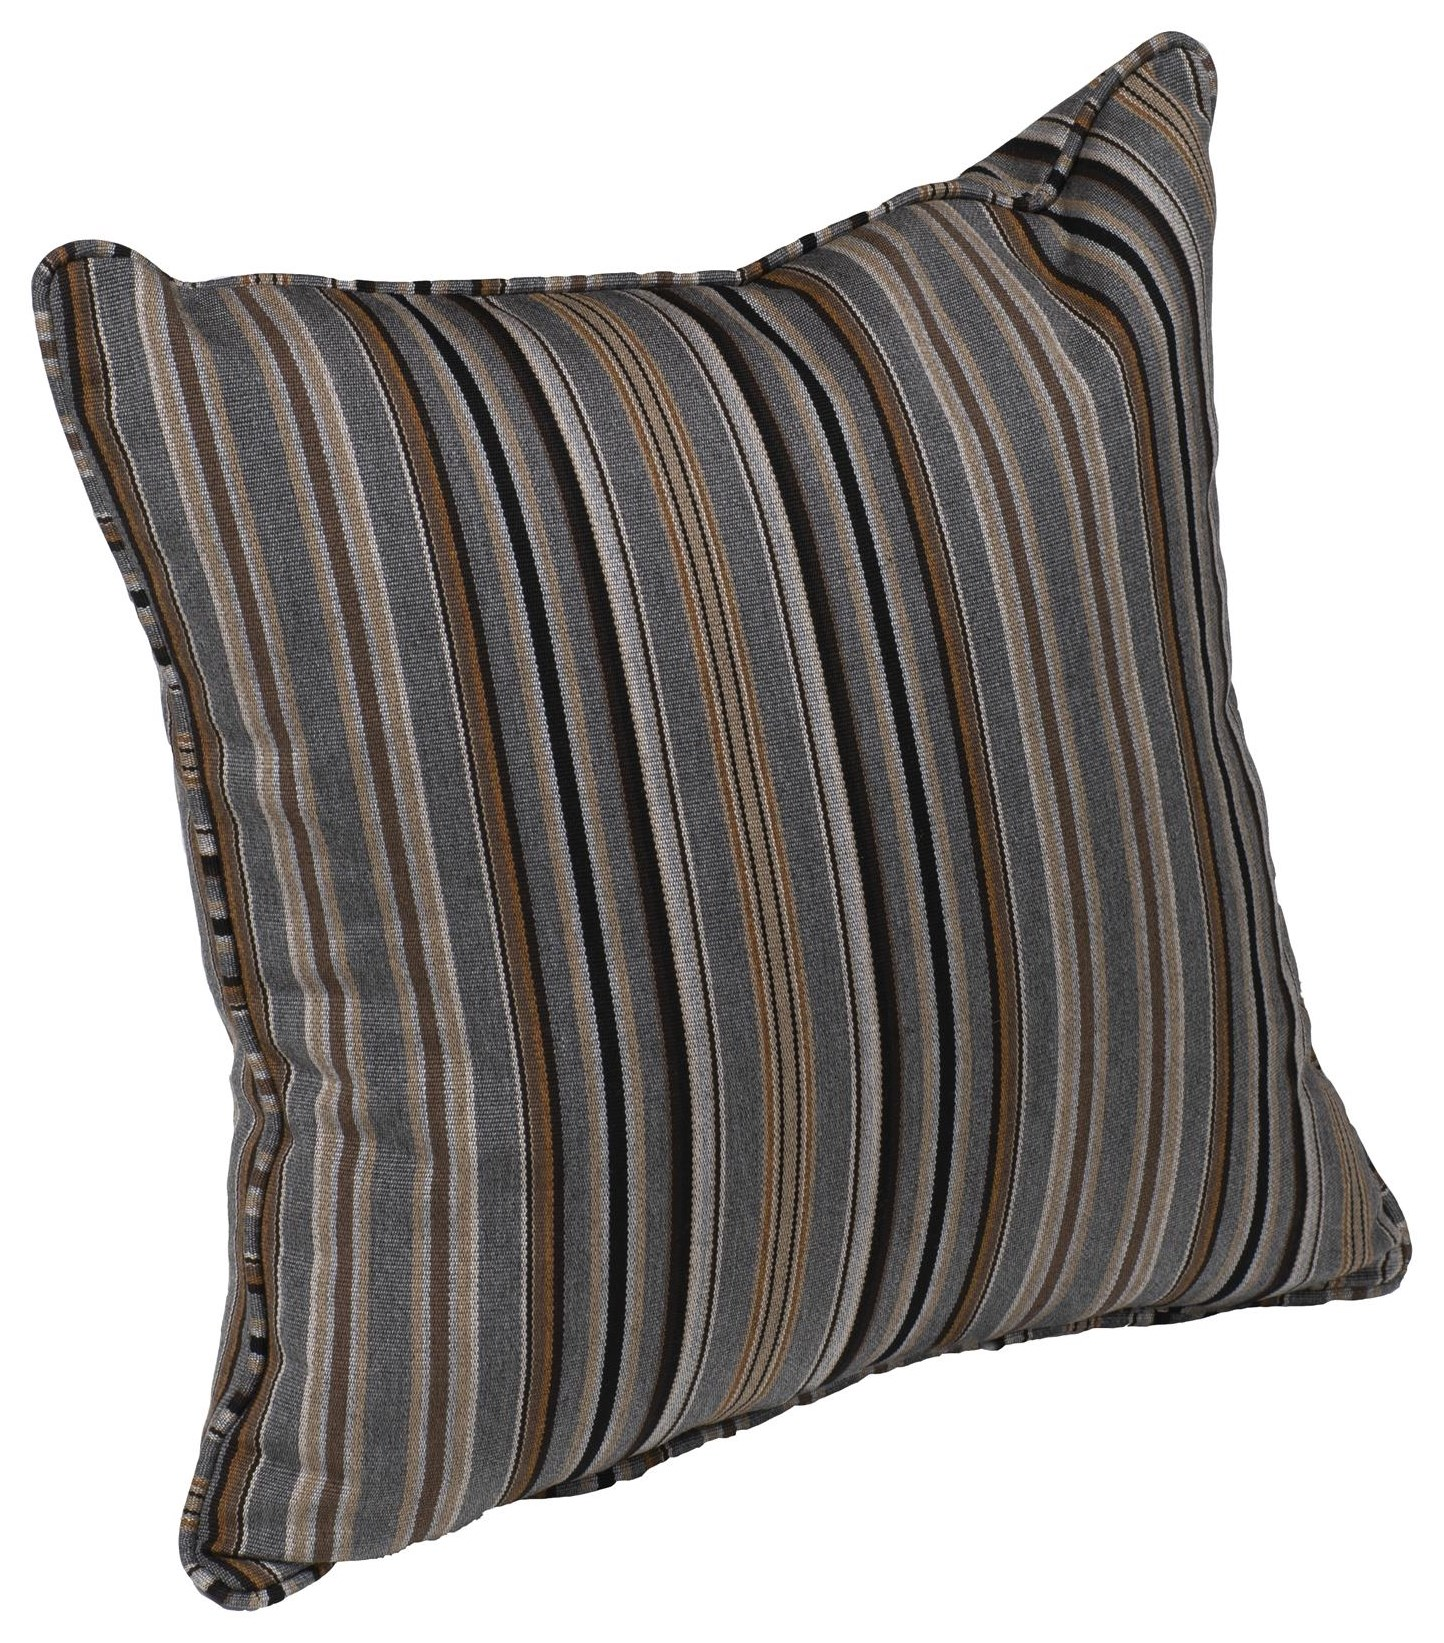 "Throw Pillows 15"" x 15"" Throw Pillow (Corded) by Berlin Gardens at Westrich Furniture & Appliances"